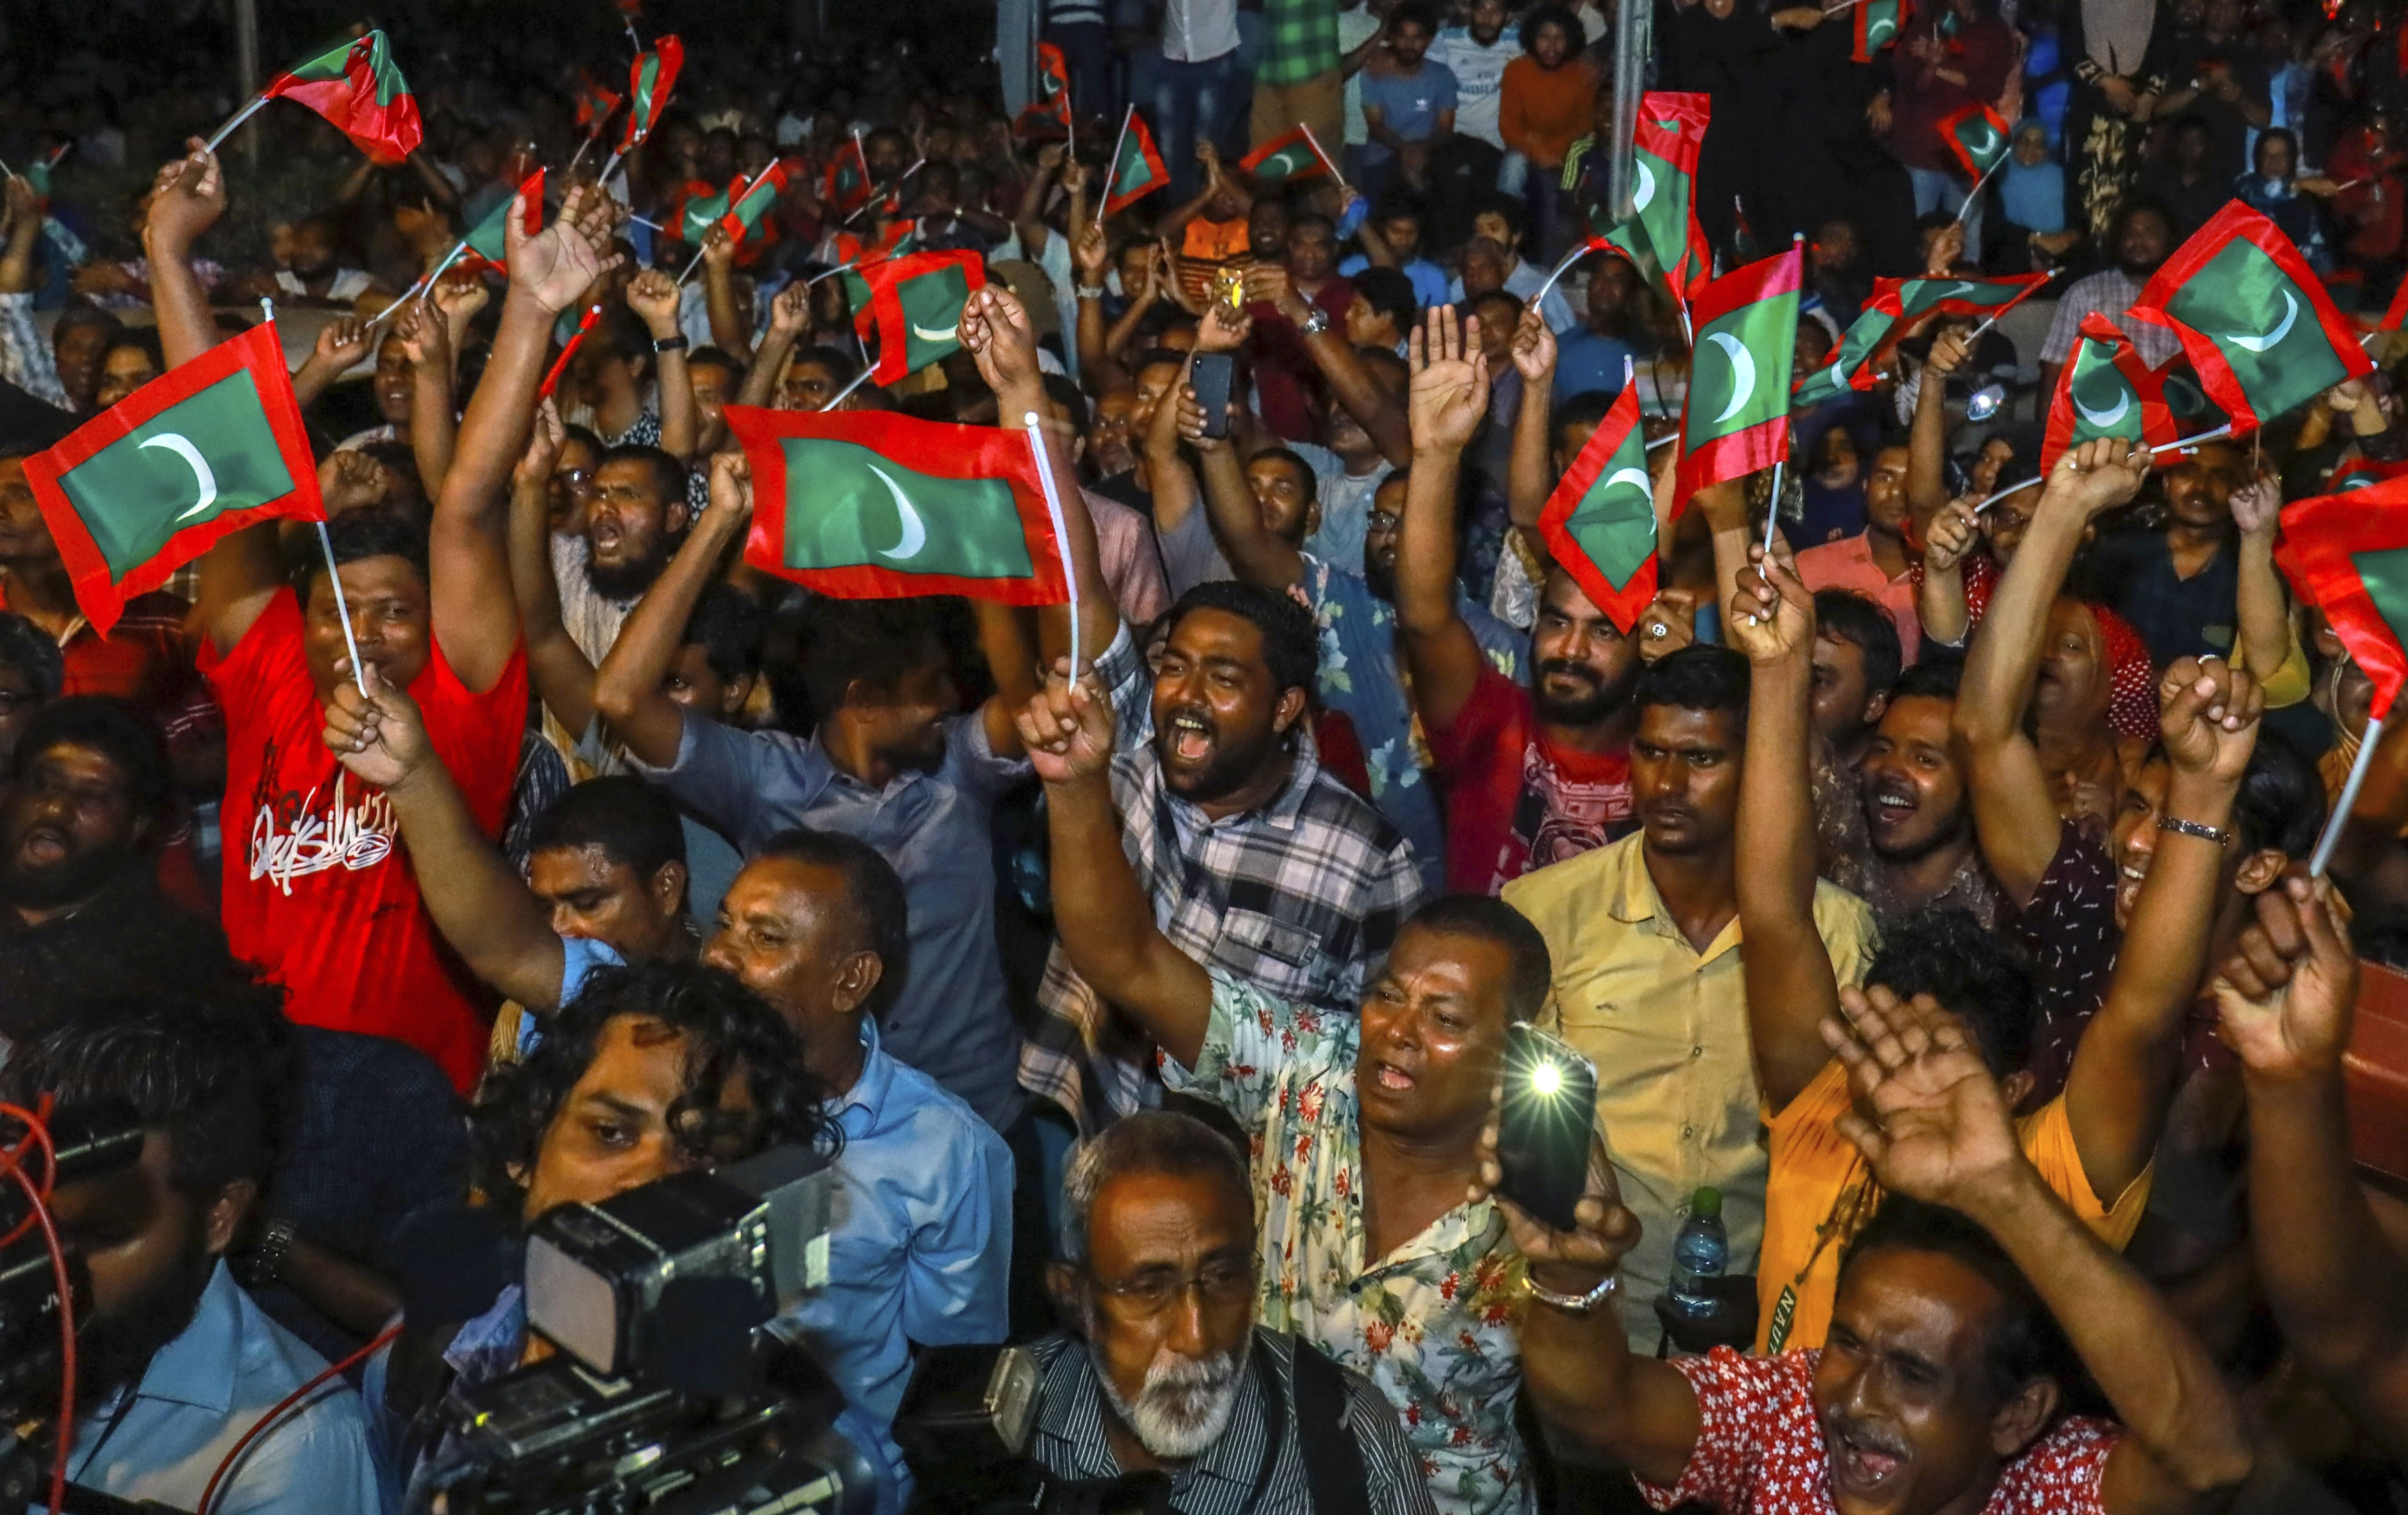 Timeline of political events leading up to Maldives election